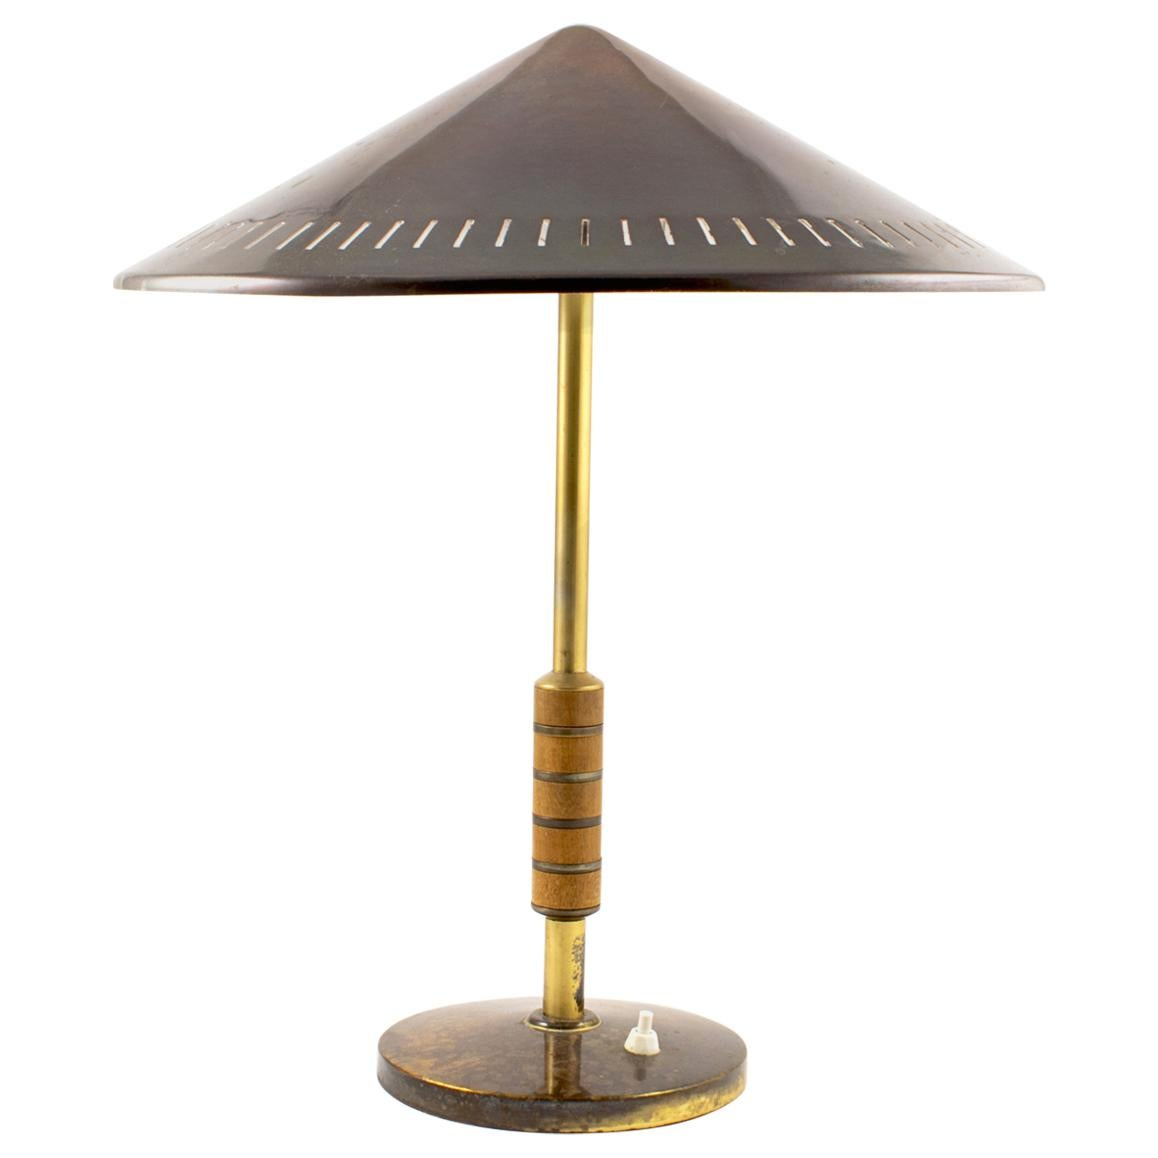 Table Lamp from Lyfa Designed by Bent Karlby, circa 1956